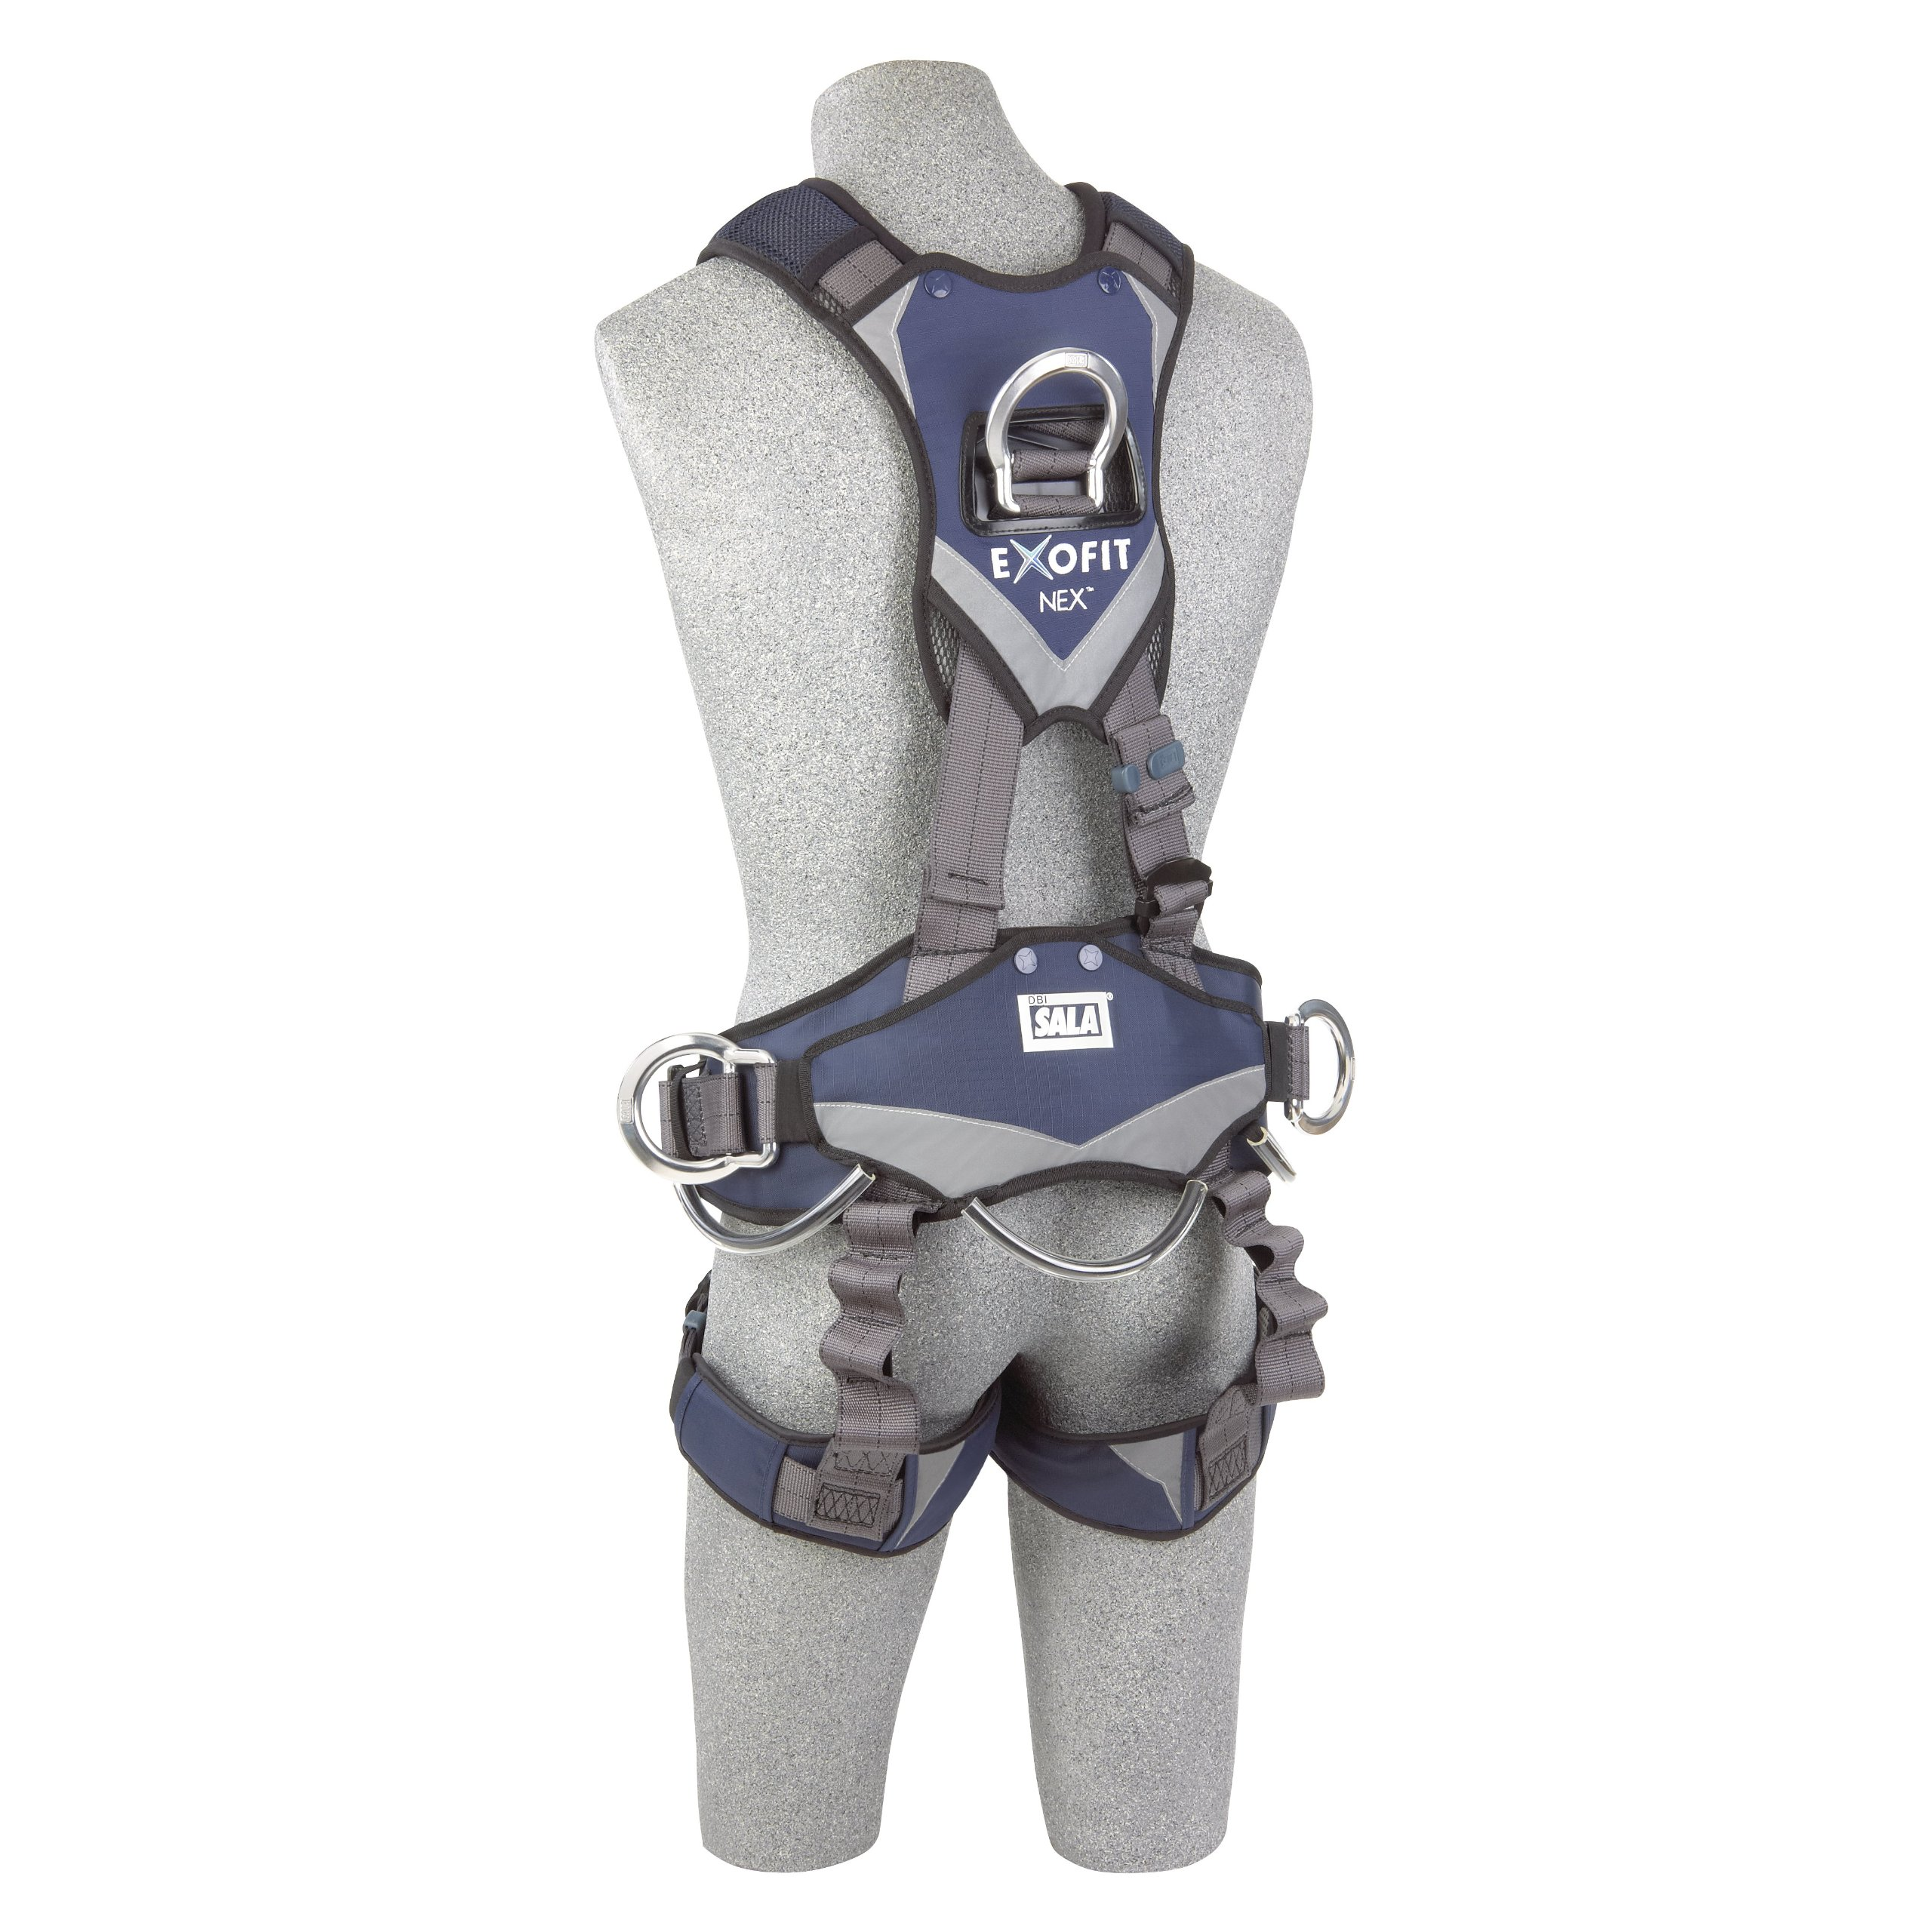 3M DBI-SALA ExoFit NEX 1113346 Full Body Rope Access/Rescue Harness, Alum Back/Front/Suspension D-Rings, Belt w/ Pad/Side D-Rings, Locking QC Leg Straps, Medium, Blue/Grey by 3M Fall Protection Business (Image #4)